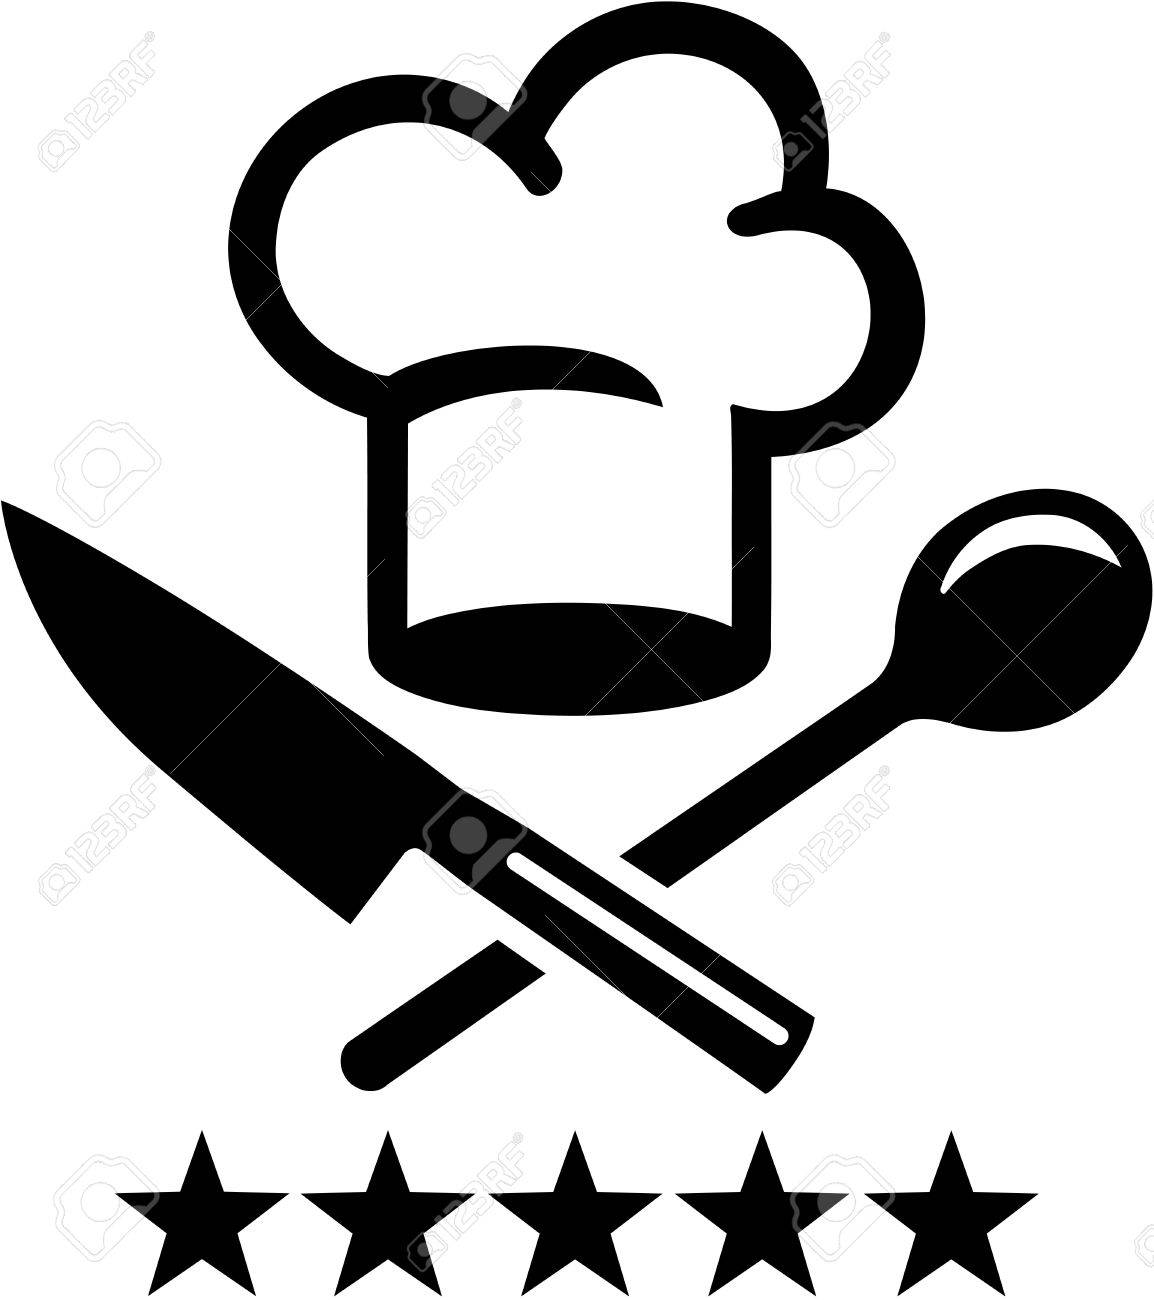 Chef Hat With Crossed Knife And Wooden Spoon Royalty Free Cliparts Vectors And Stock Illustration Image 81569110 Download chefs hat images and photos. chef hat with crossed knife and wooden spoon